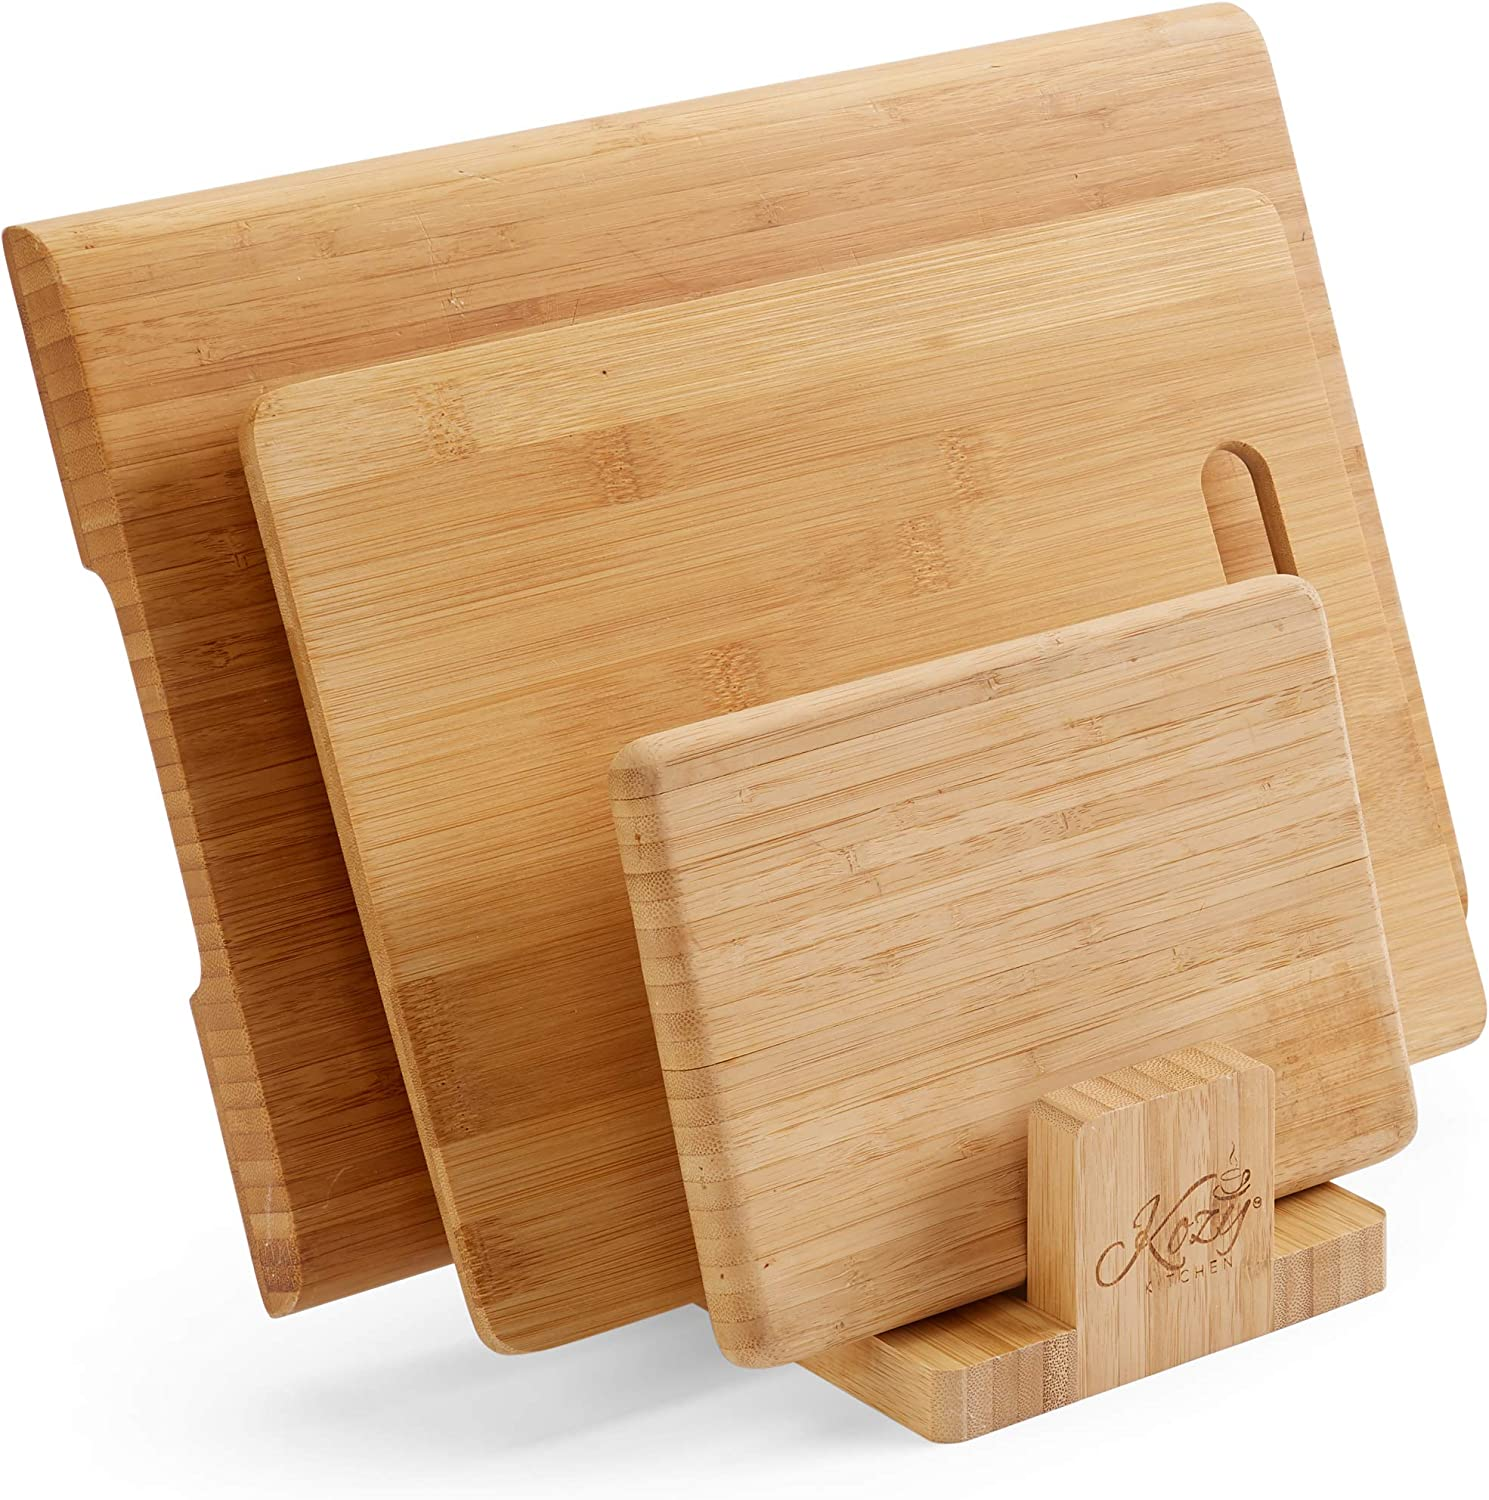 Amazon Com Cutting Board Organizer Natural Bamboo Kitchen Pantry Rack Cabinet Organizer For Cutting Board Dish Bakeware Plate Pot Lid Cook Books Book Stand Holder By Kozy Kitchen Kitchen Dining